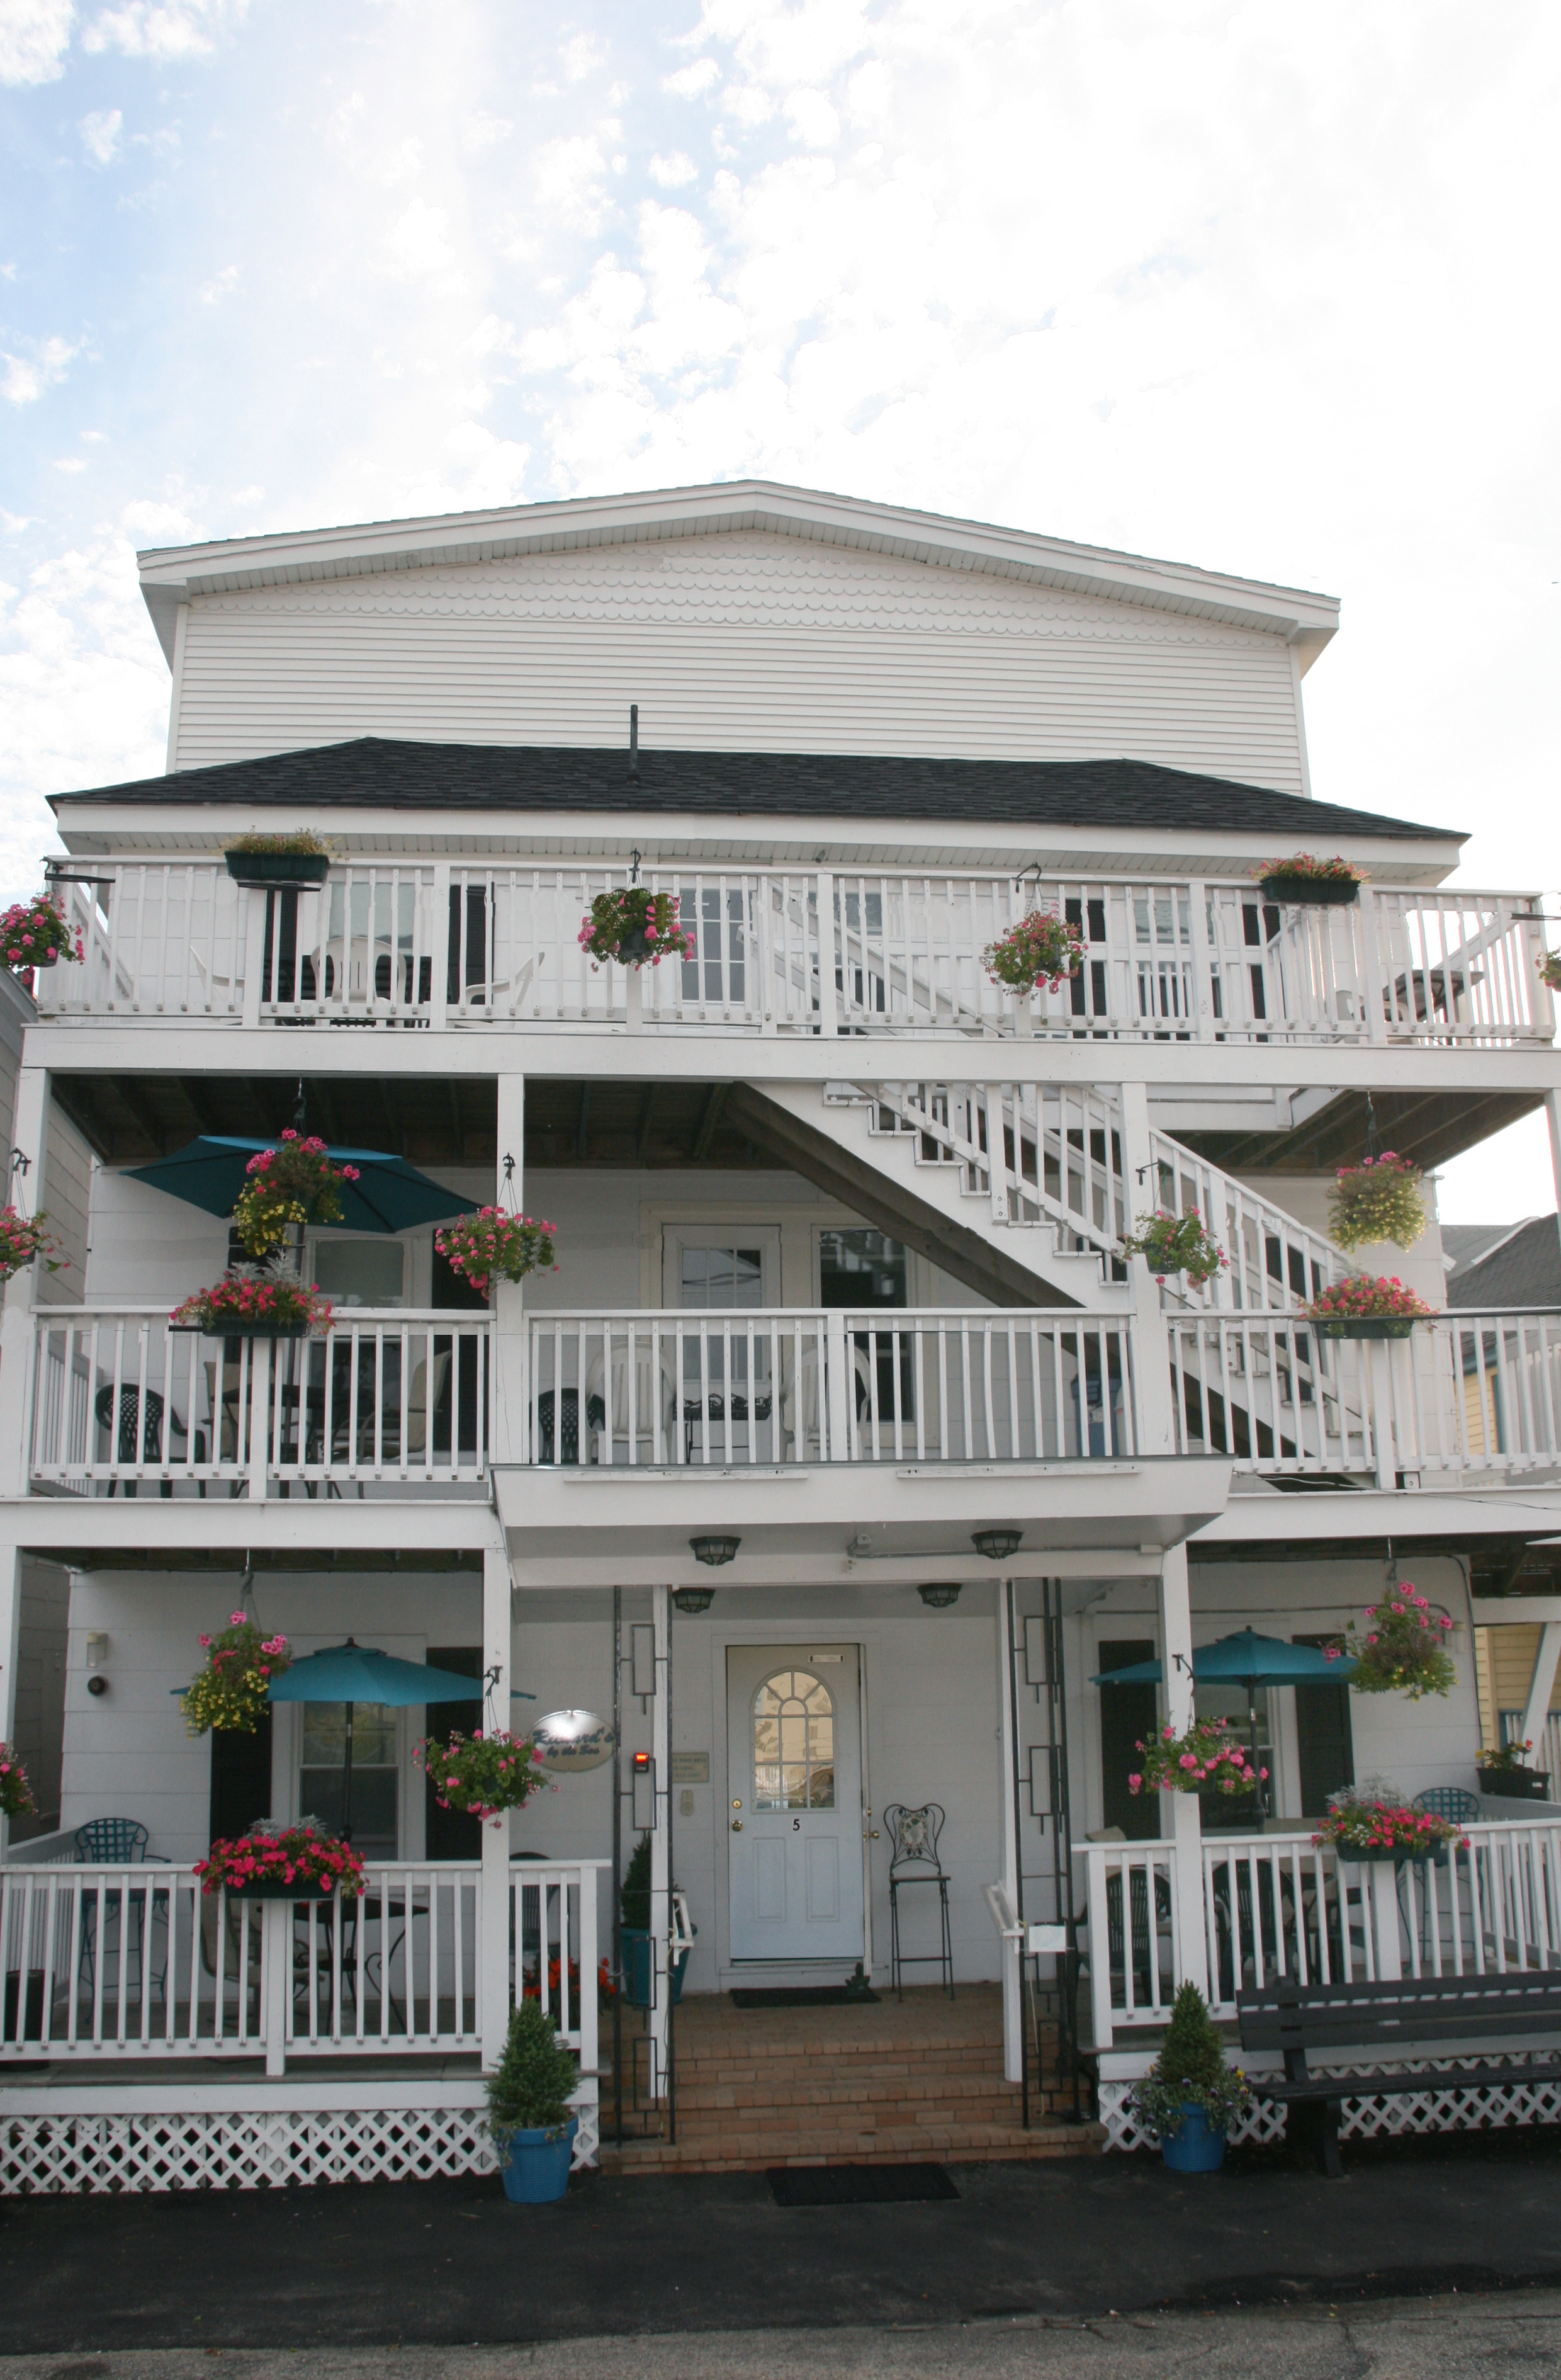 Richard's By The Sea